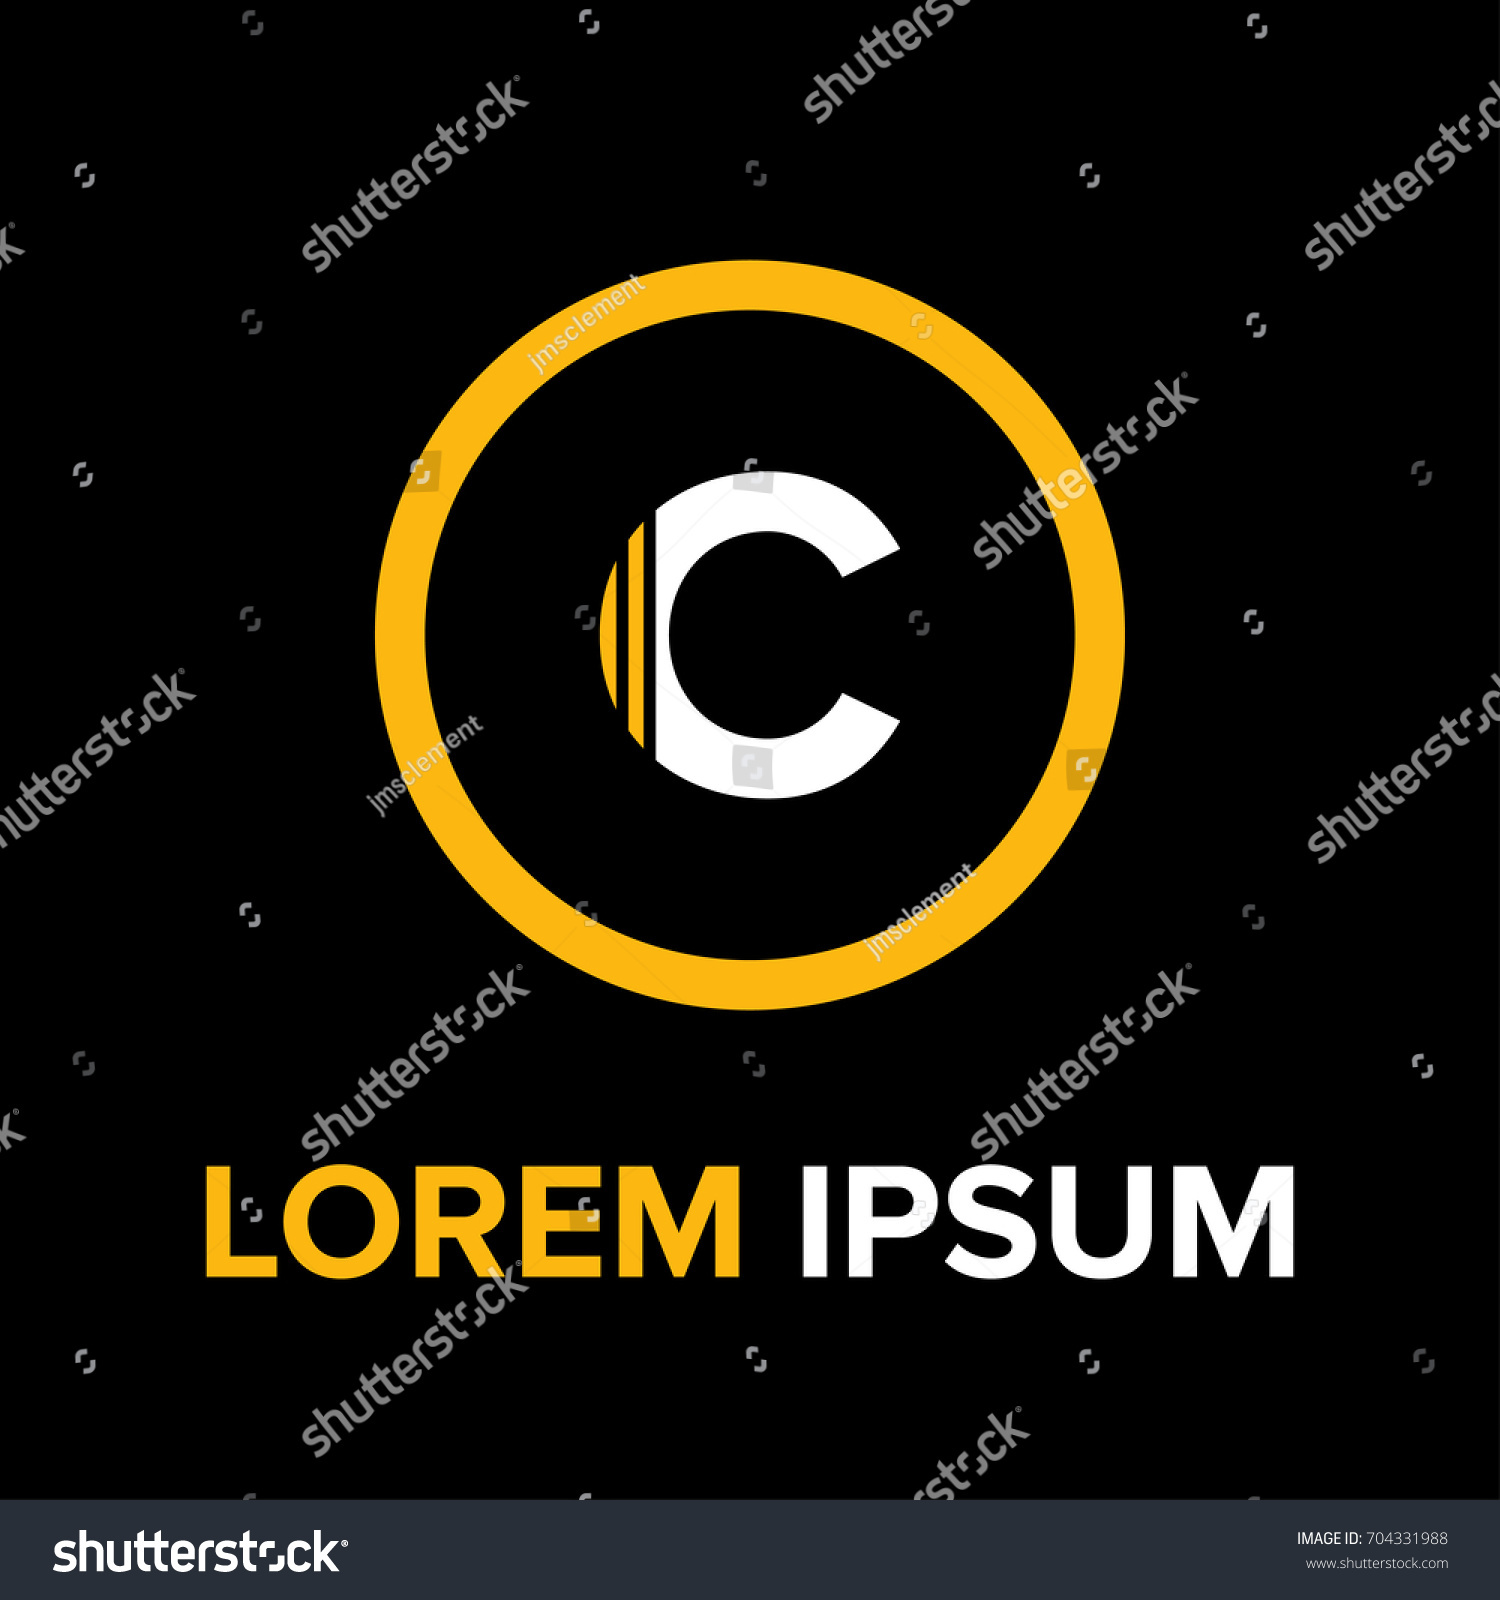 Strips letter c logo c letter stock vector 704331988 shutterstock strips letter c logo c letter design vector with strips and yellow circle for logo biocorpaavc Images